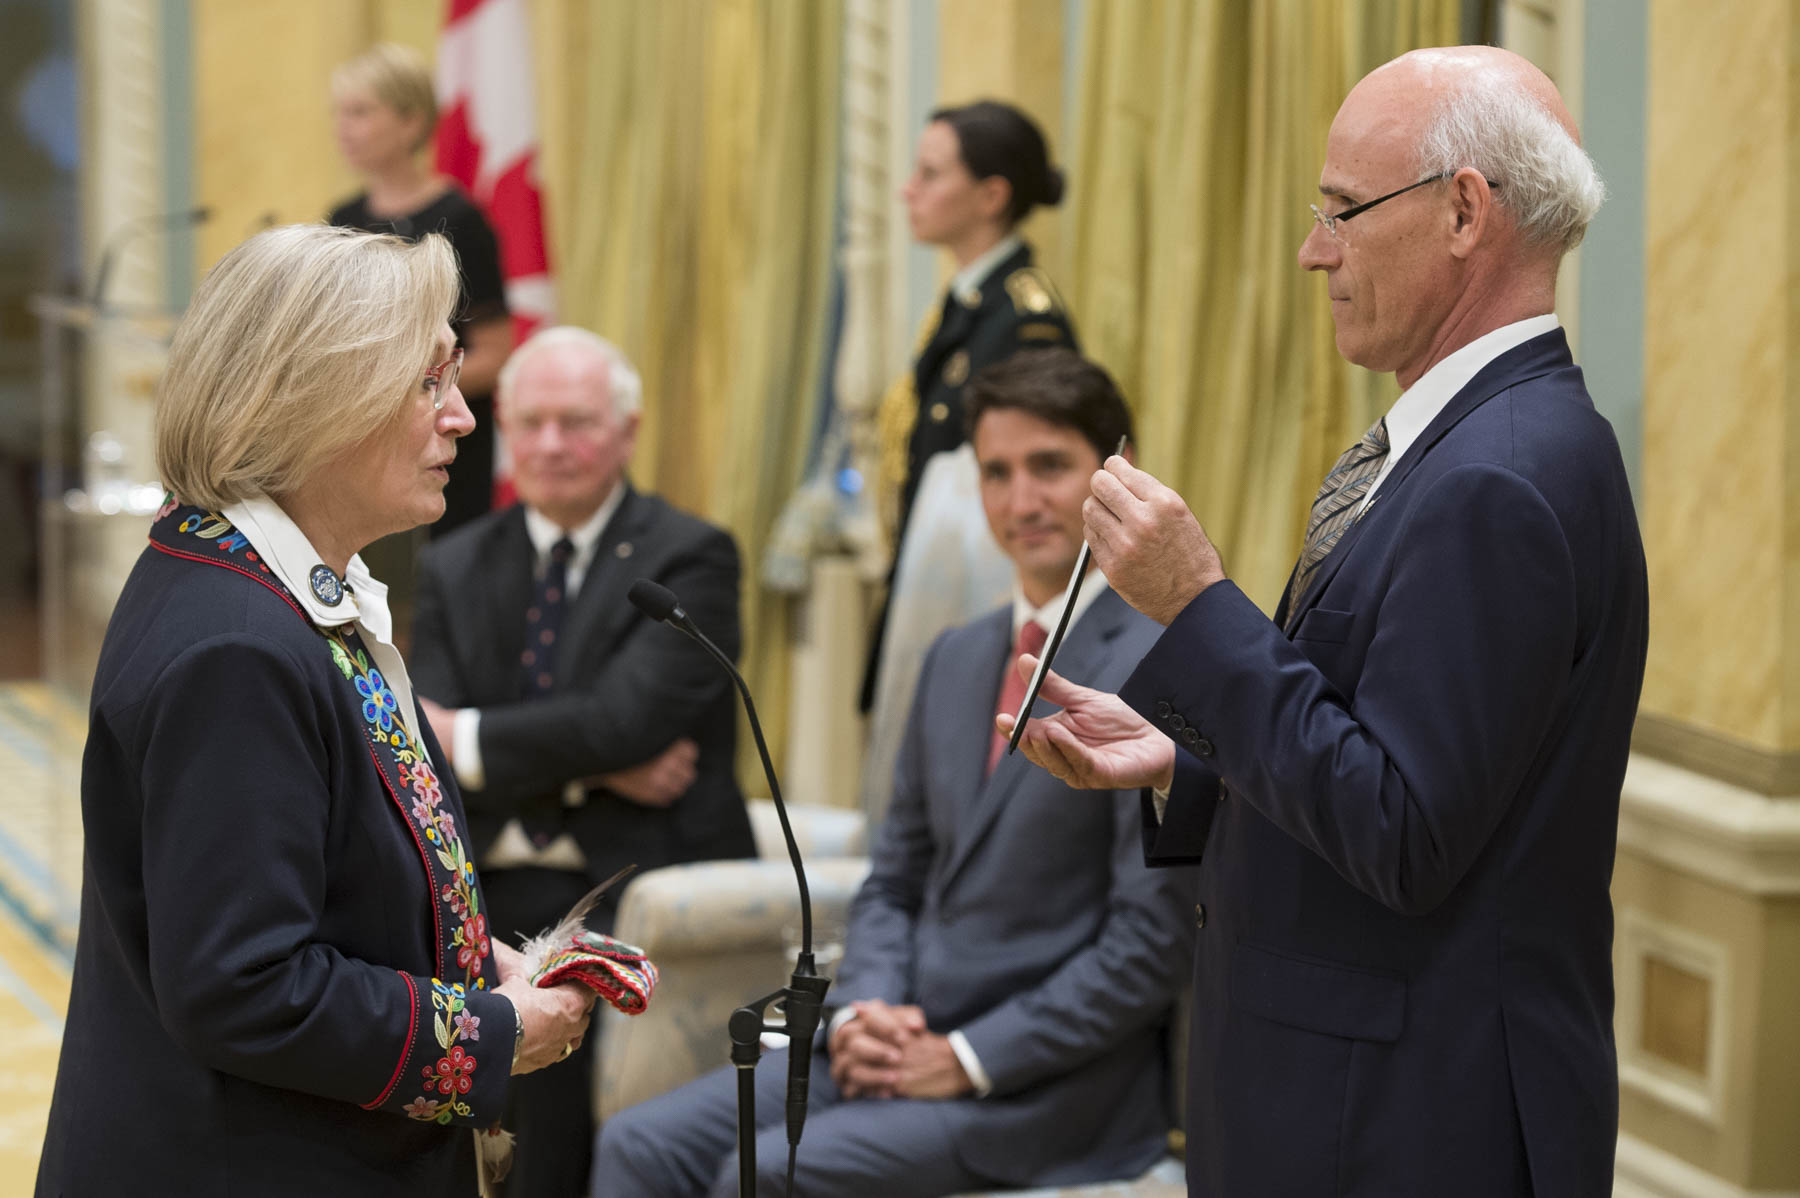 Carolyn Bennett, former Minister of Indigenous and Northern Affairs, was sworn in as Minister of Crown-Indigenous Relations and Northern Affairs.